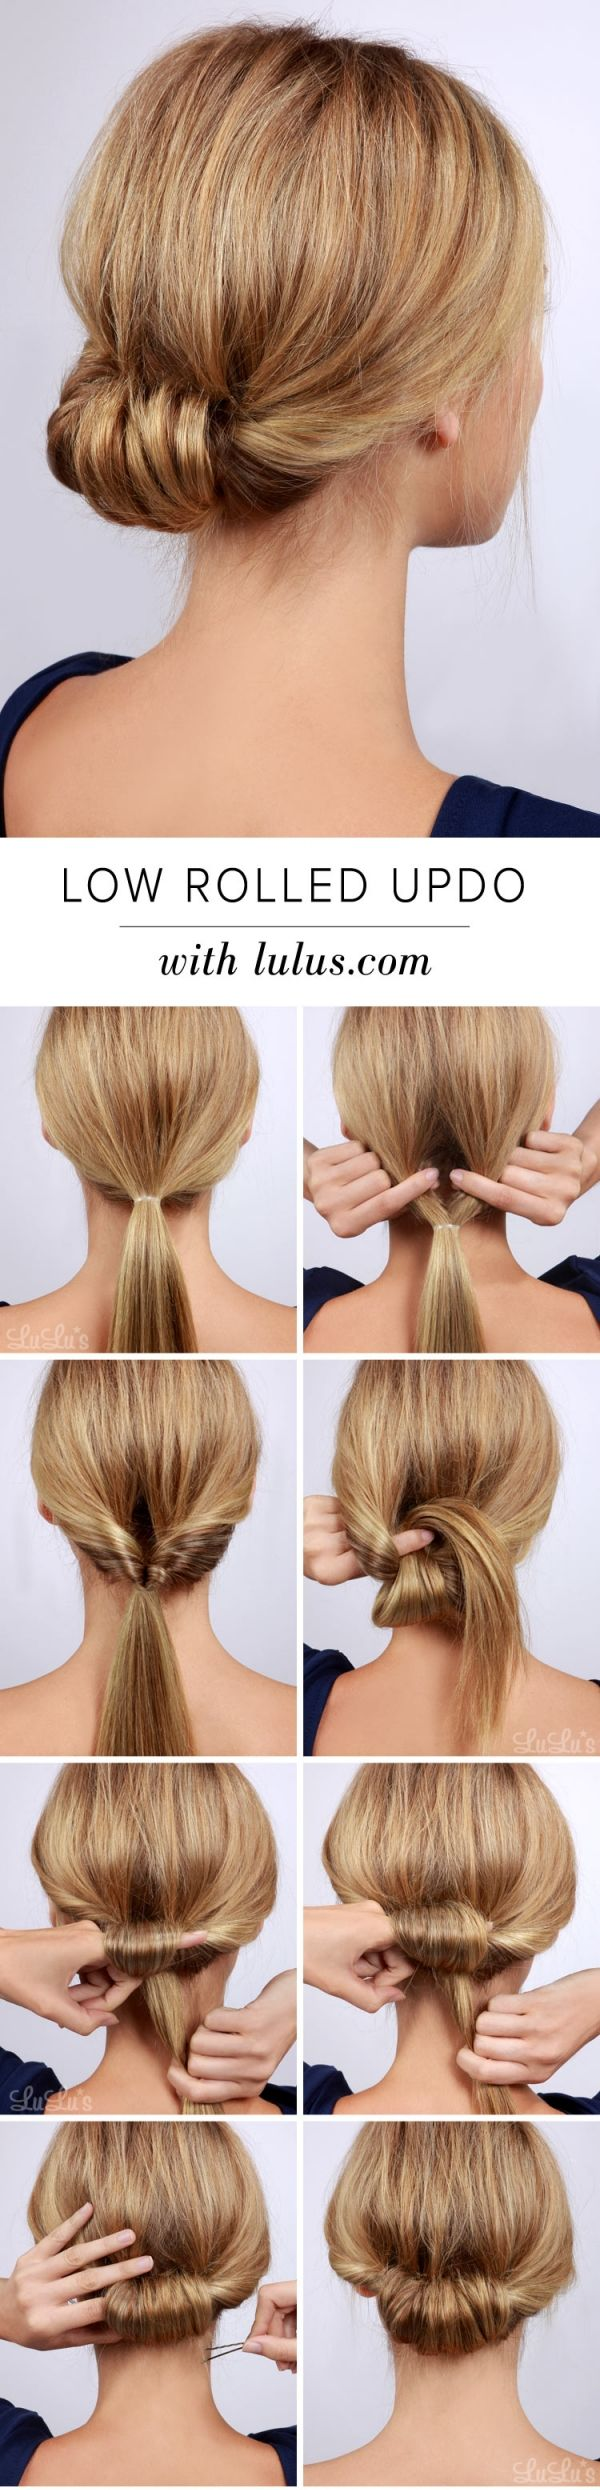 Miraculous 1000 Ideas About Thick Hair Updo On Pinterest Thick Hair Short Hairstyles Gunalazisus